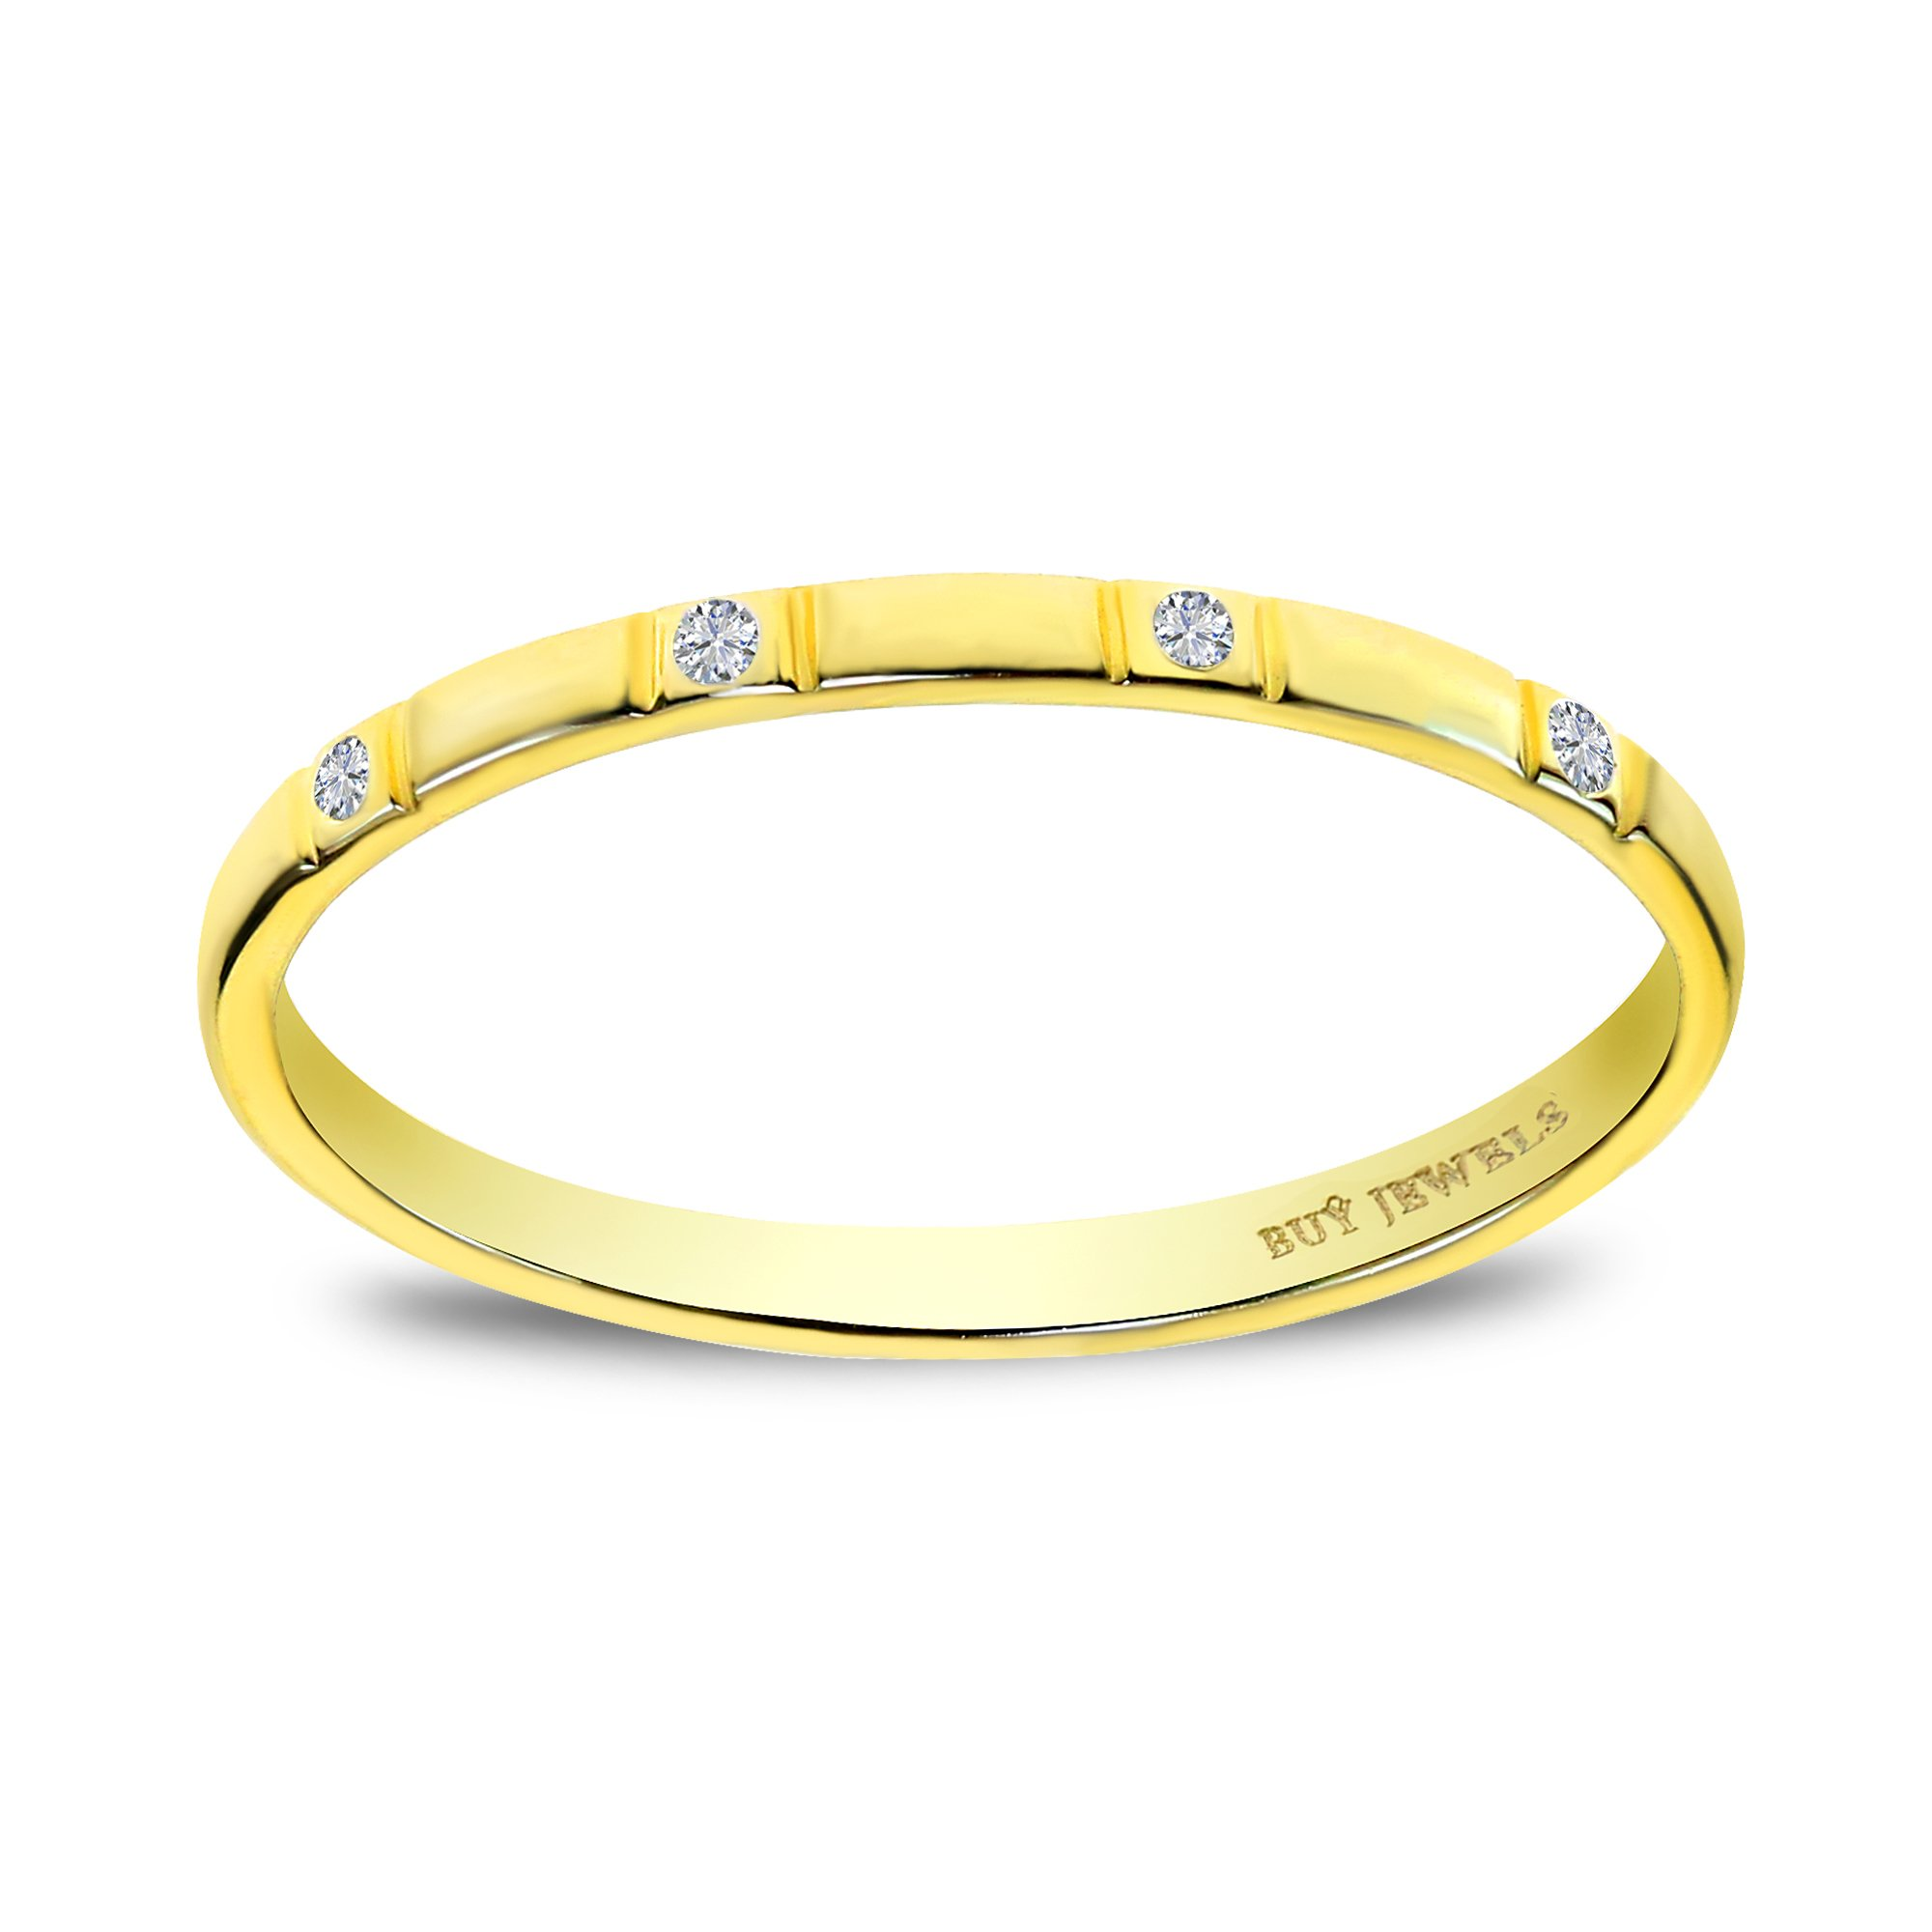 Buy Jewels 10k Gold and Diamond Stackable Dainty Promise Anniversary Ring for Women (yellow-gold, 5.5)